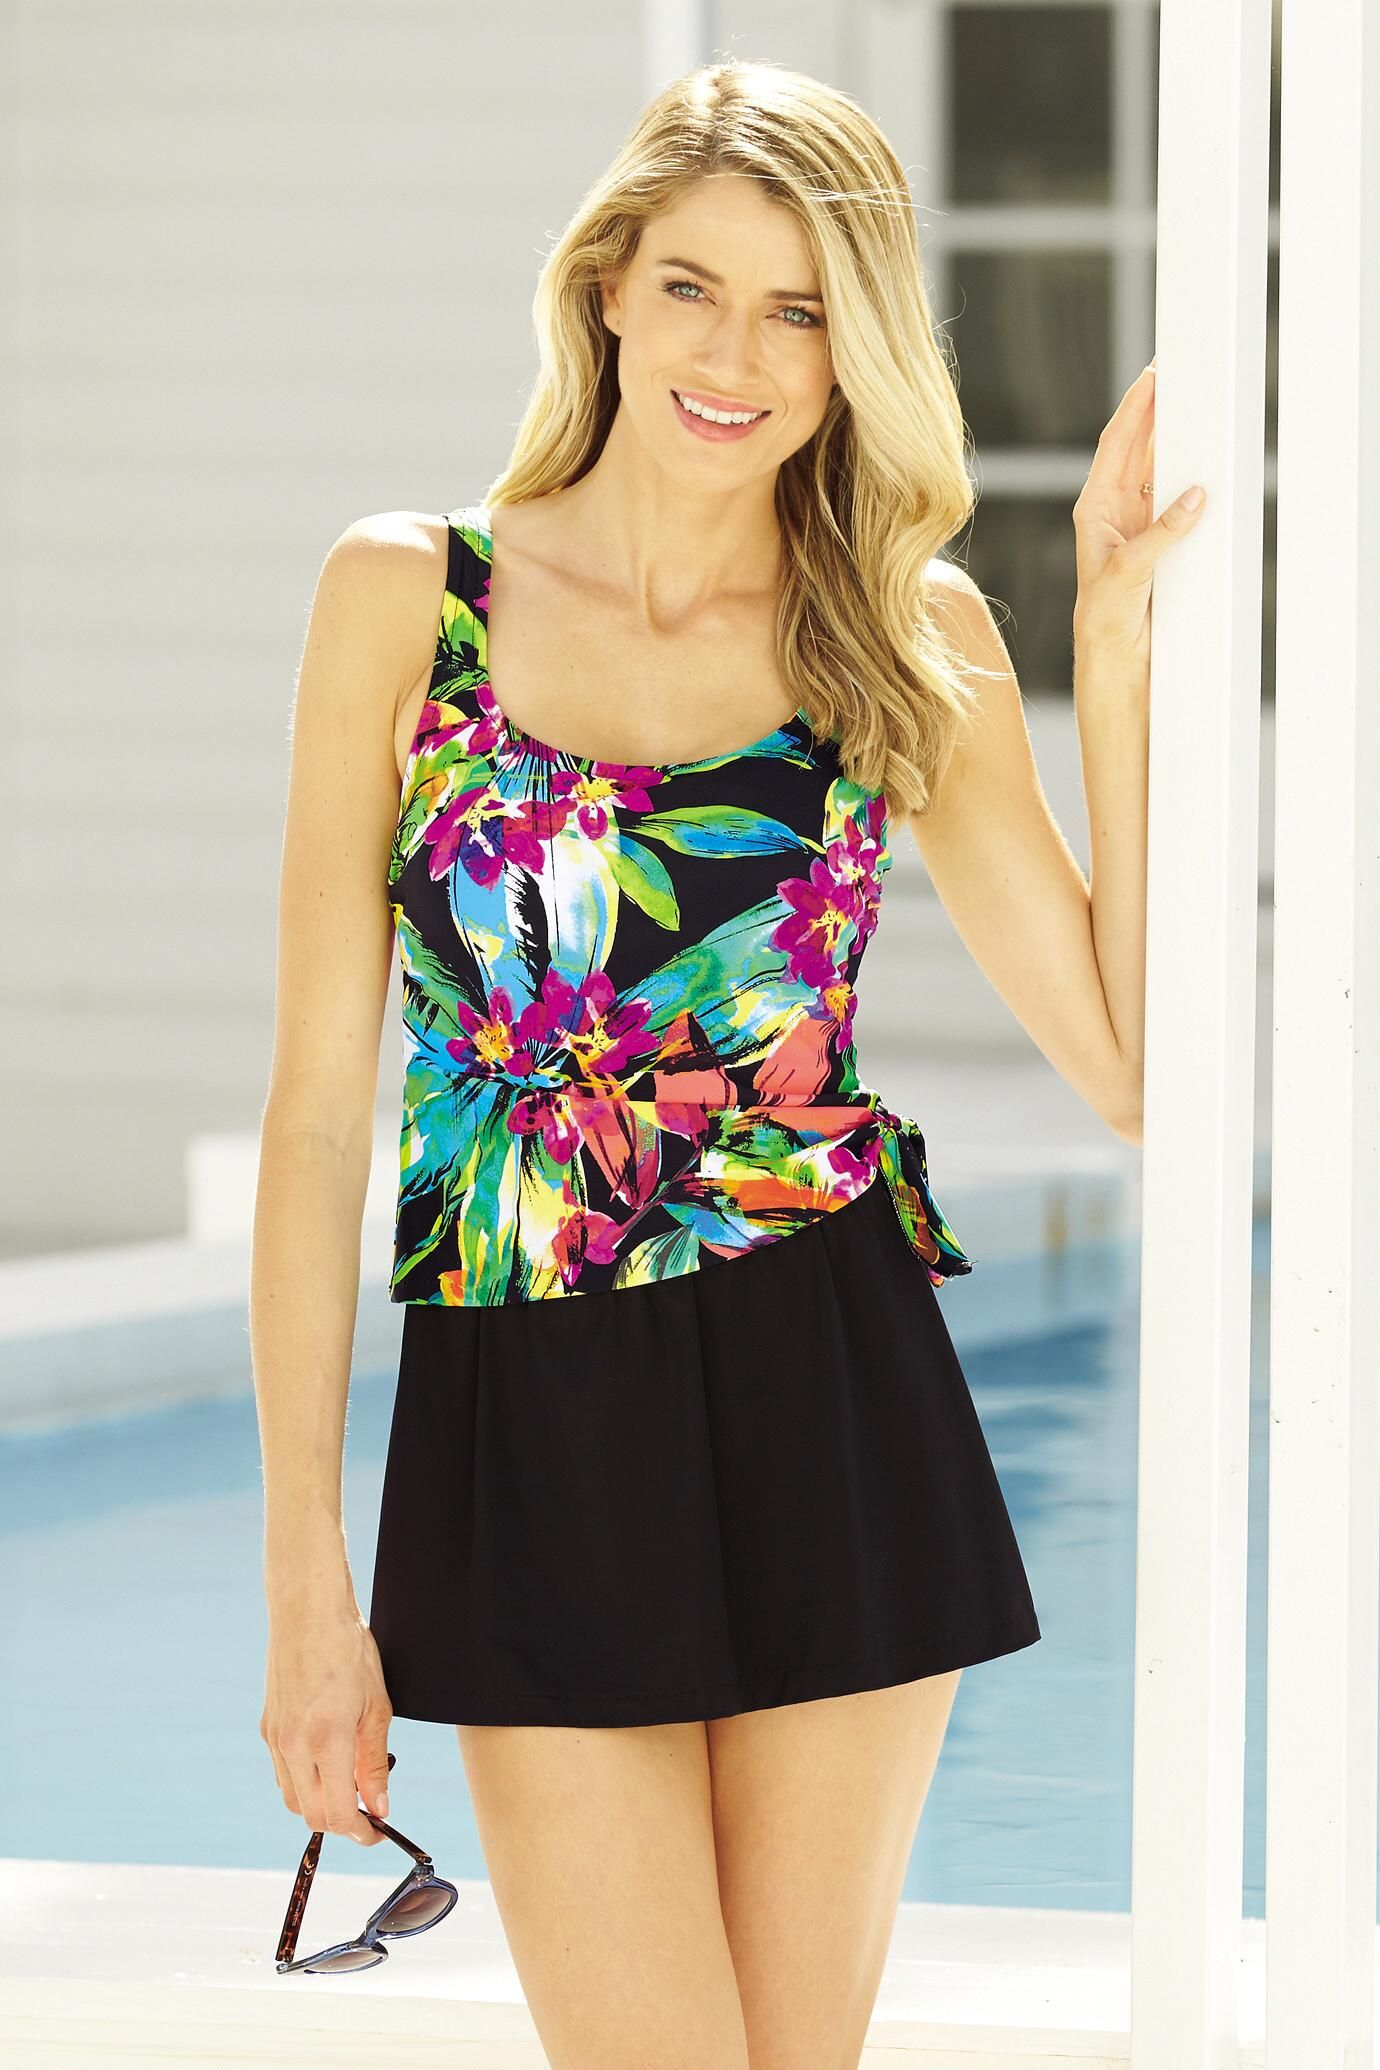 fe5649503ab01 Go tropical in this floral print swimsuit. This two piece bathing suit  gives you full coverage with a tankini top and skirted black bottoms.